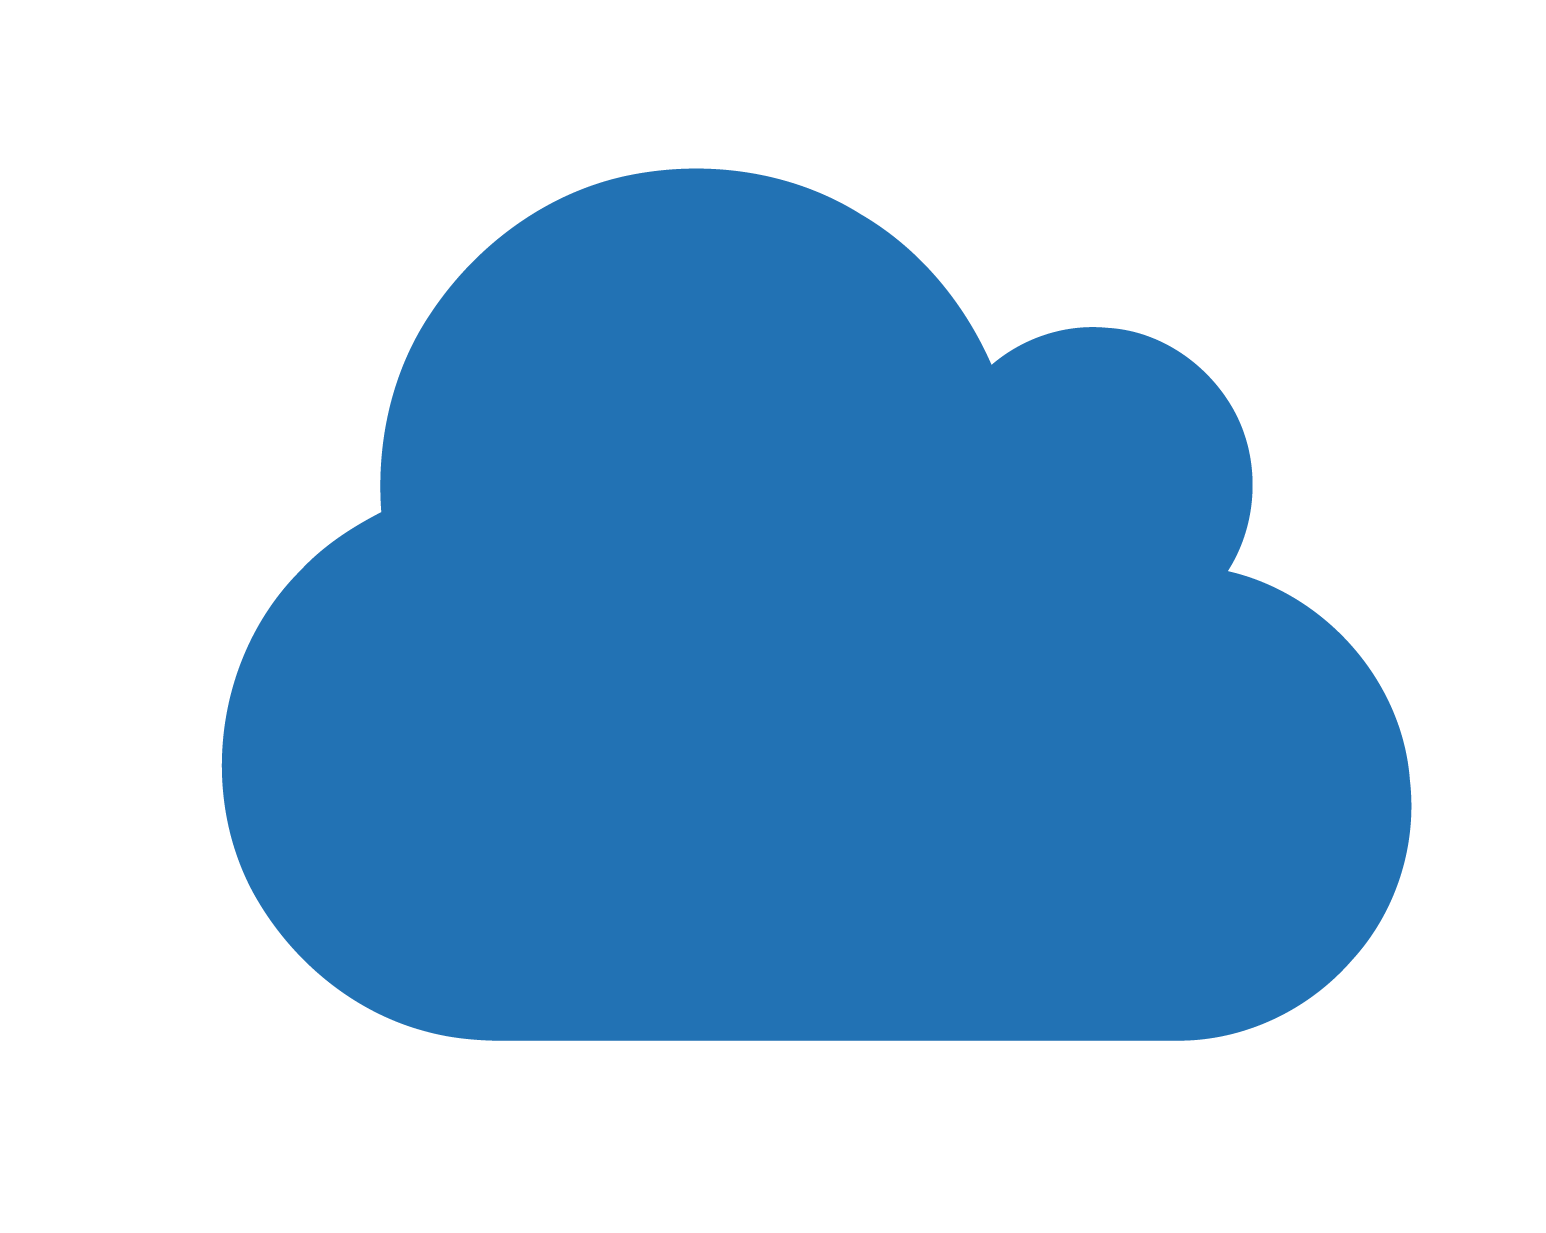 Cloud_Icon_Blue.png